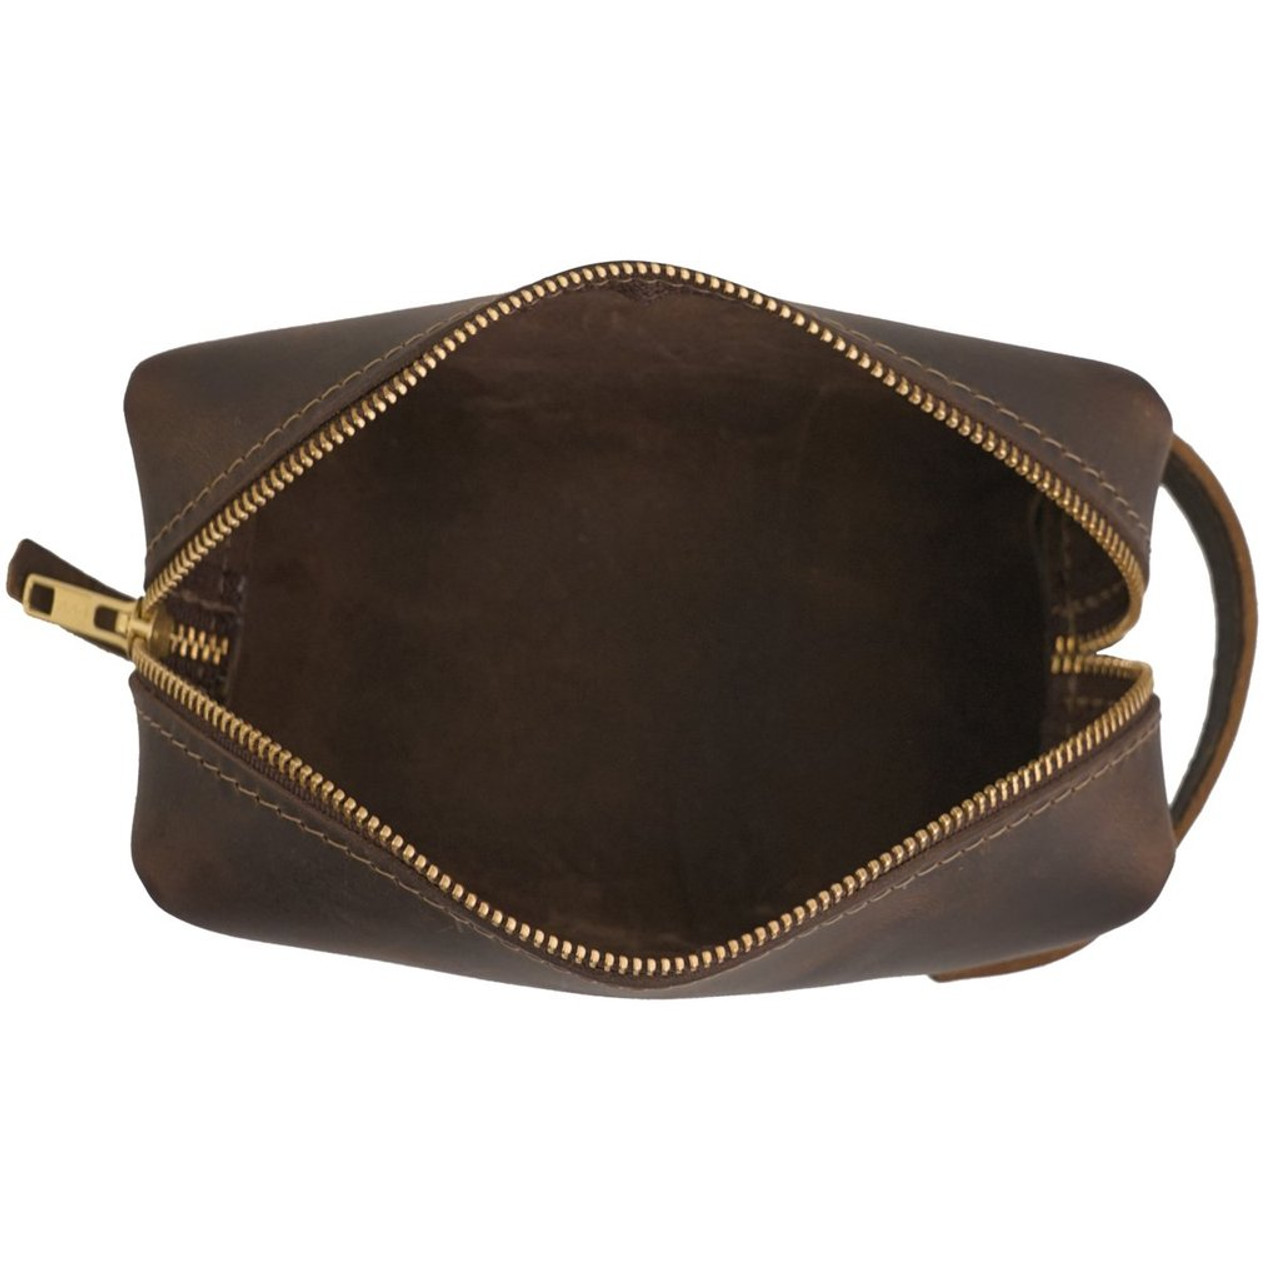 Large Leather Pouch - High Line by Rustico - open view